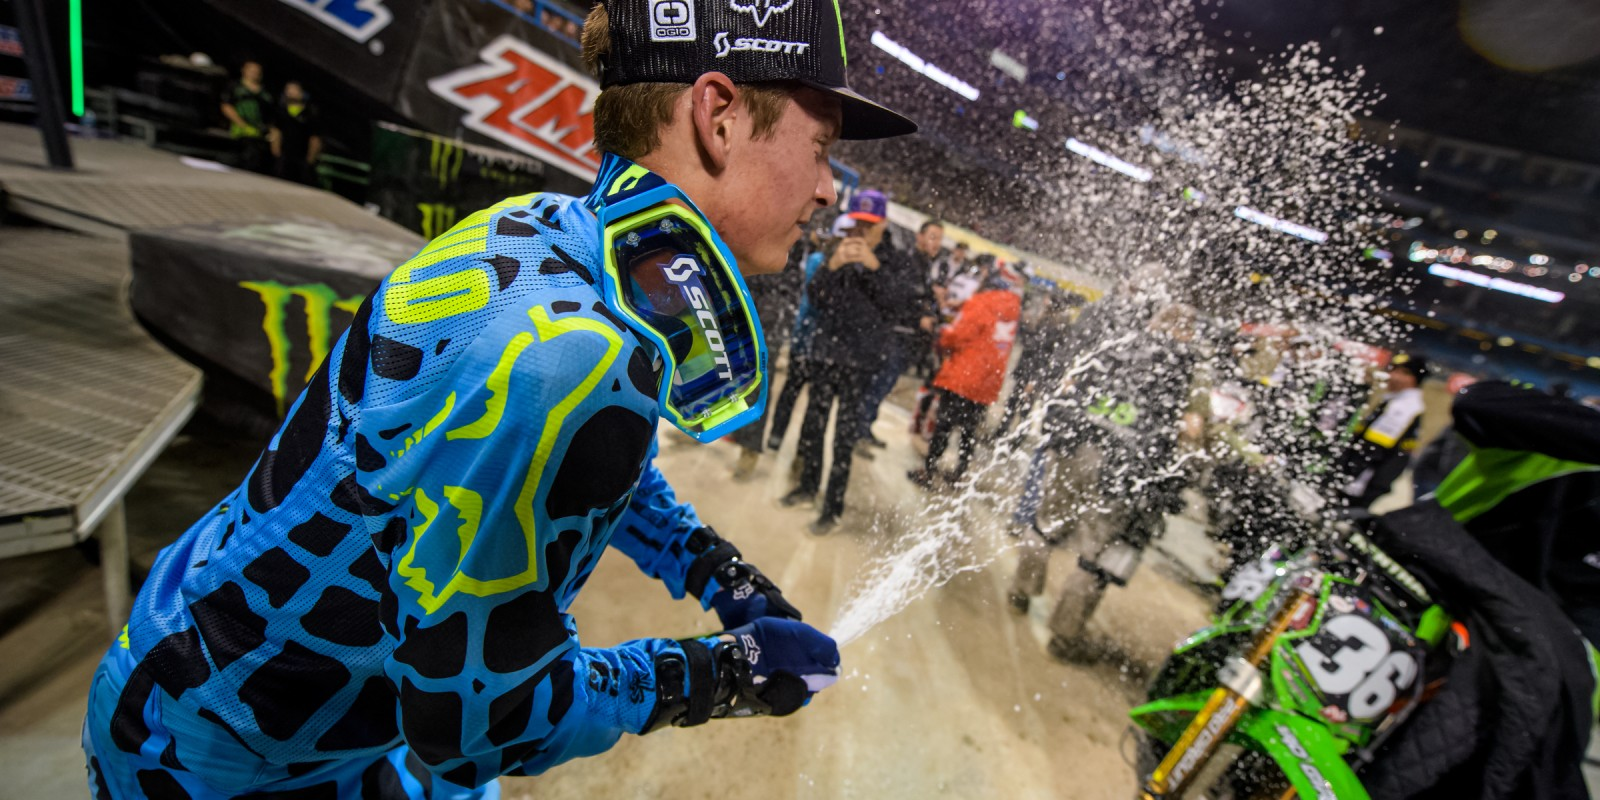 Cianciarulo action shots at the 2017 Supercross championship in Toronto